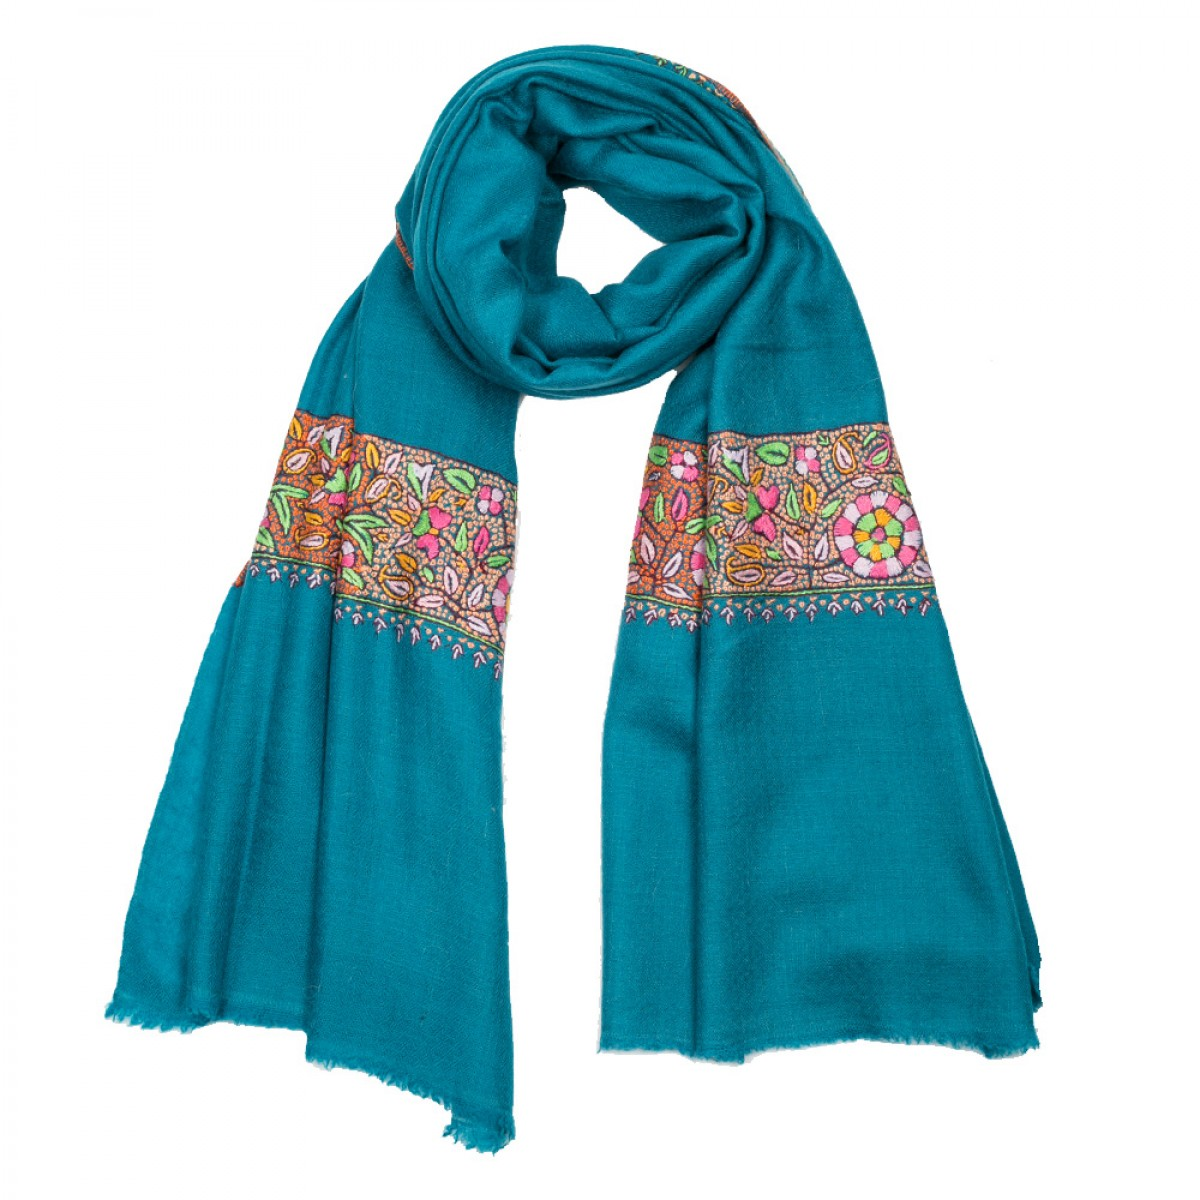 Embroidered Pashmina Stole - Turquoise Blue